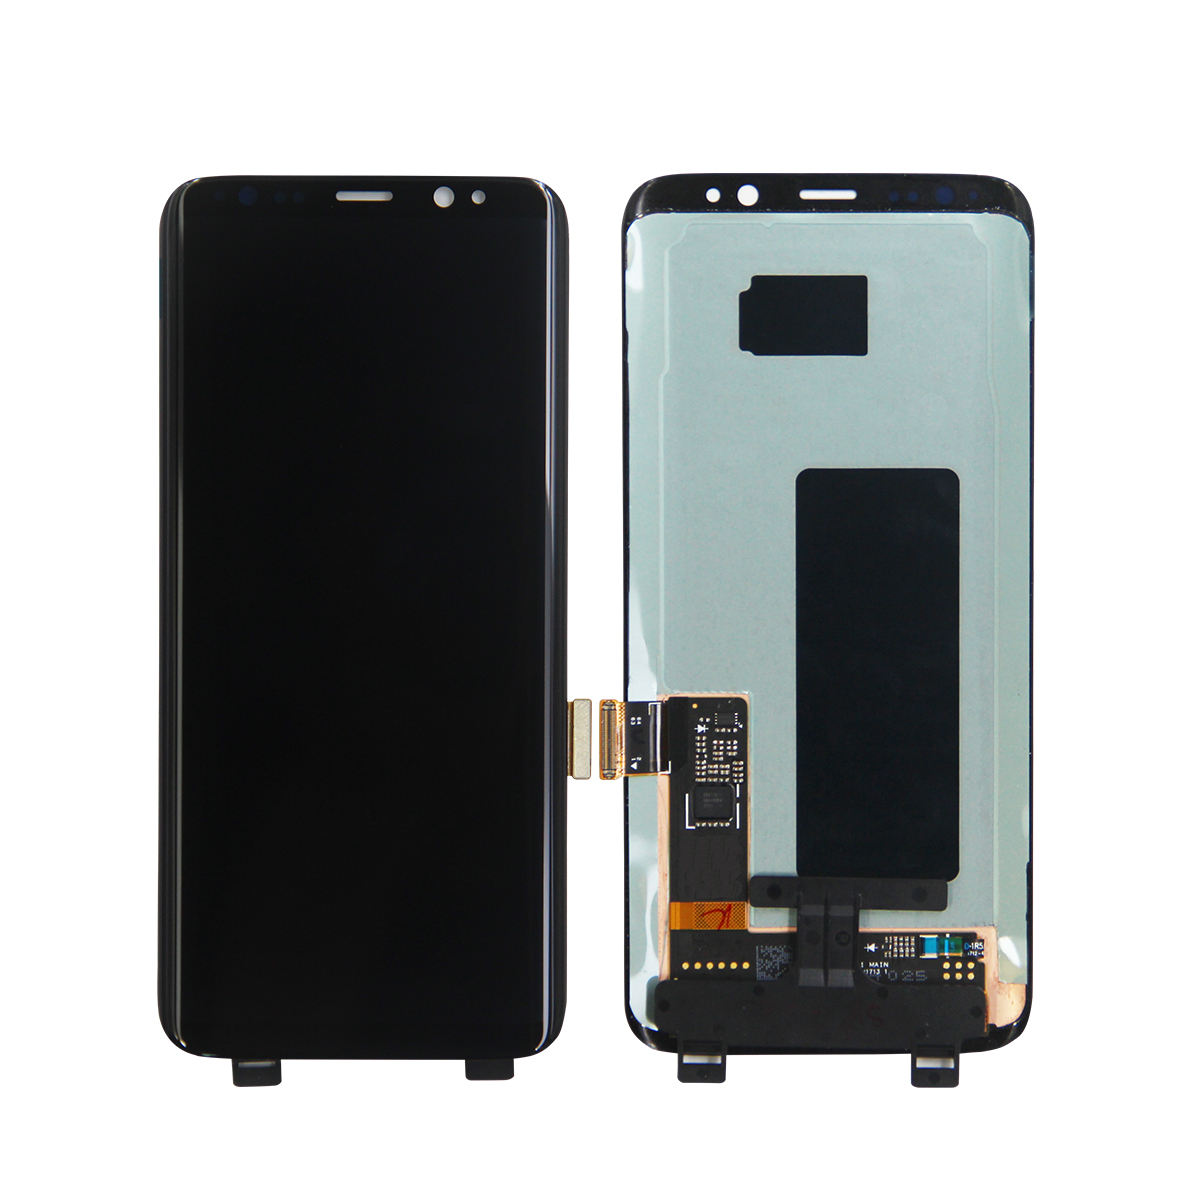 lcds touch screen assembly digitizer display replacement incell parts note S A J mobile phone lcd display for Samsung galaxy